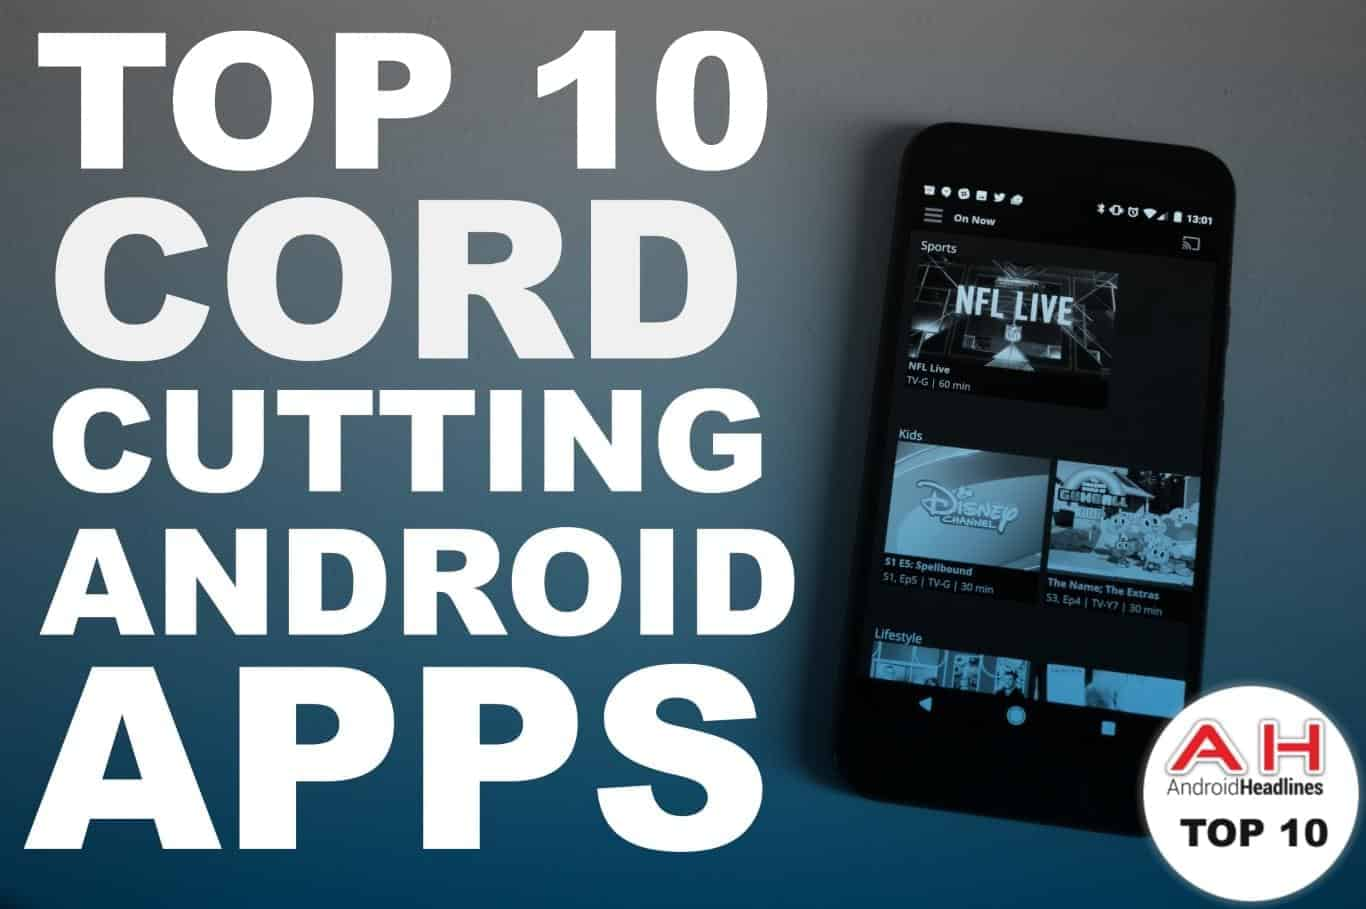 Top 10 cord cutting apps ah